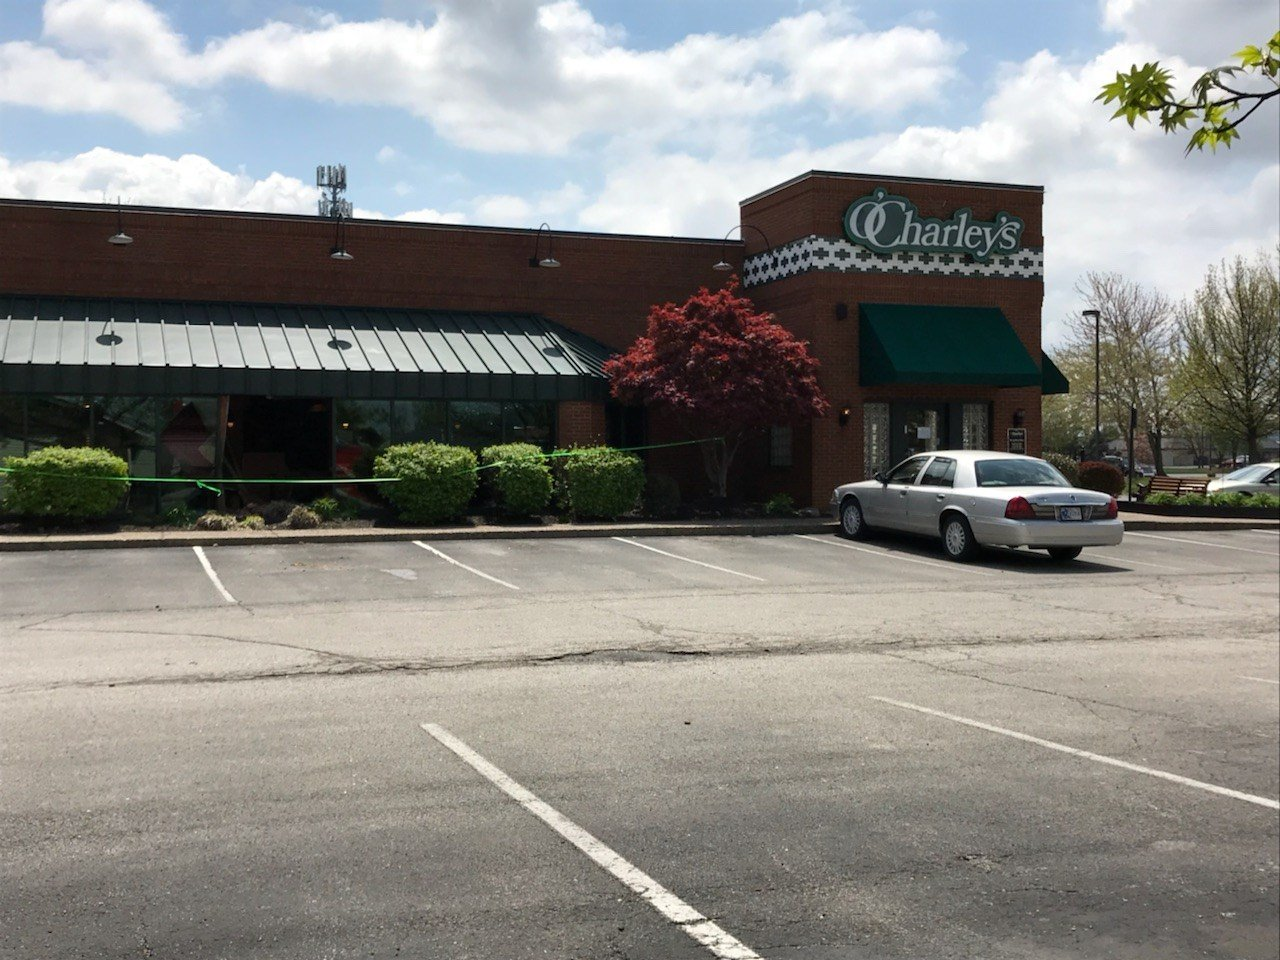 Shattered glass and broken tables and chairs littered the floor of the Clarksville, Indiana, O'Charley's after a car drove into the side of the building, just after 12 p.m.